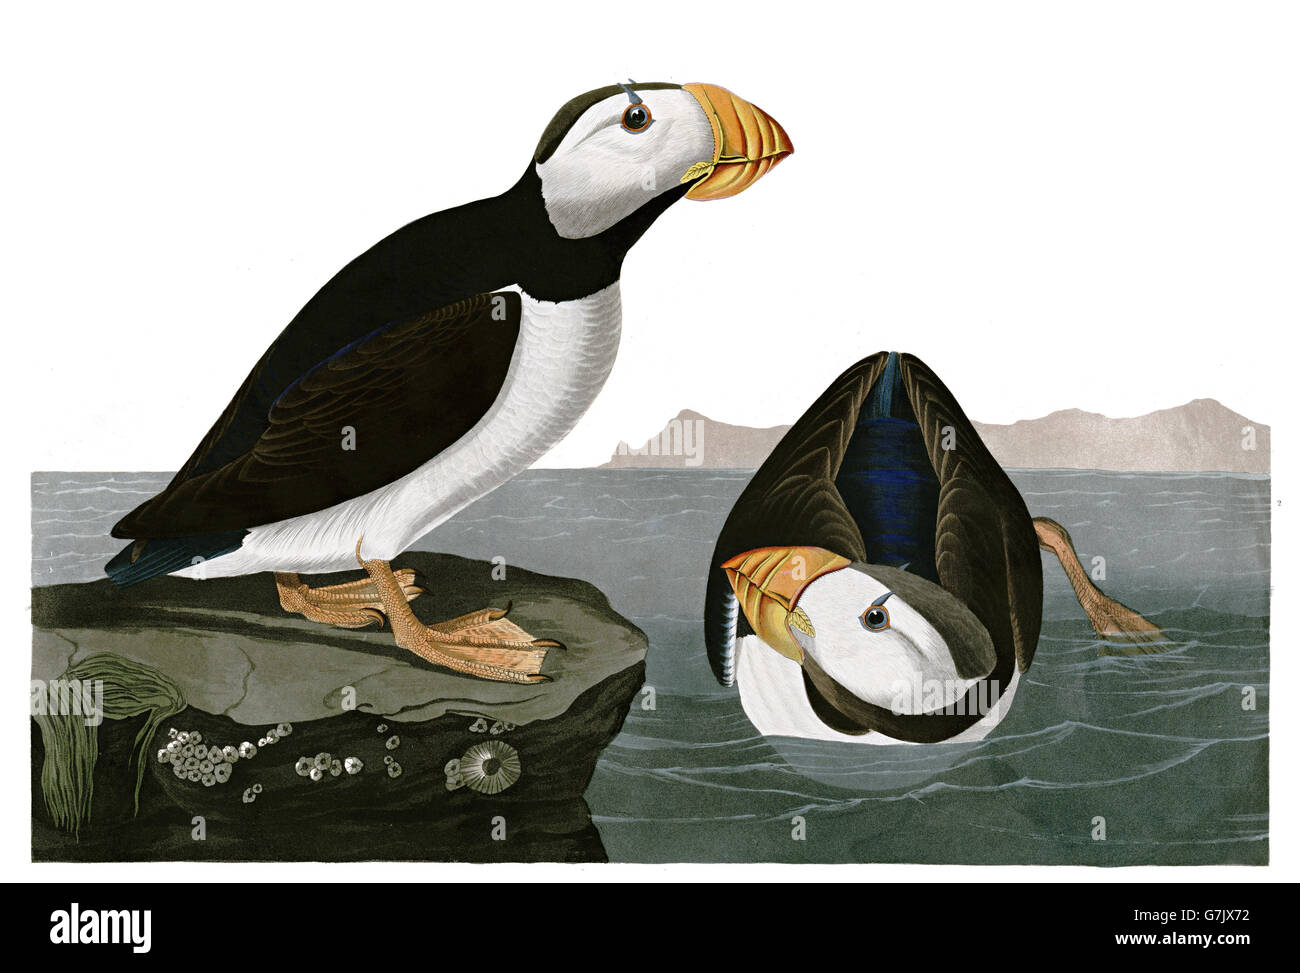 Horned Puffin, Fratercula corniculata, birds, 1827 - 1838 Stock Photo